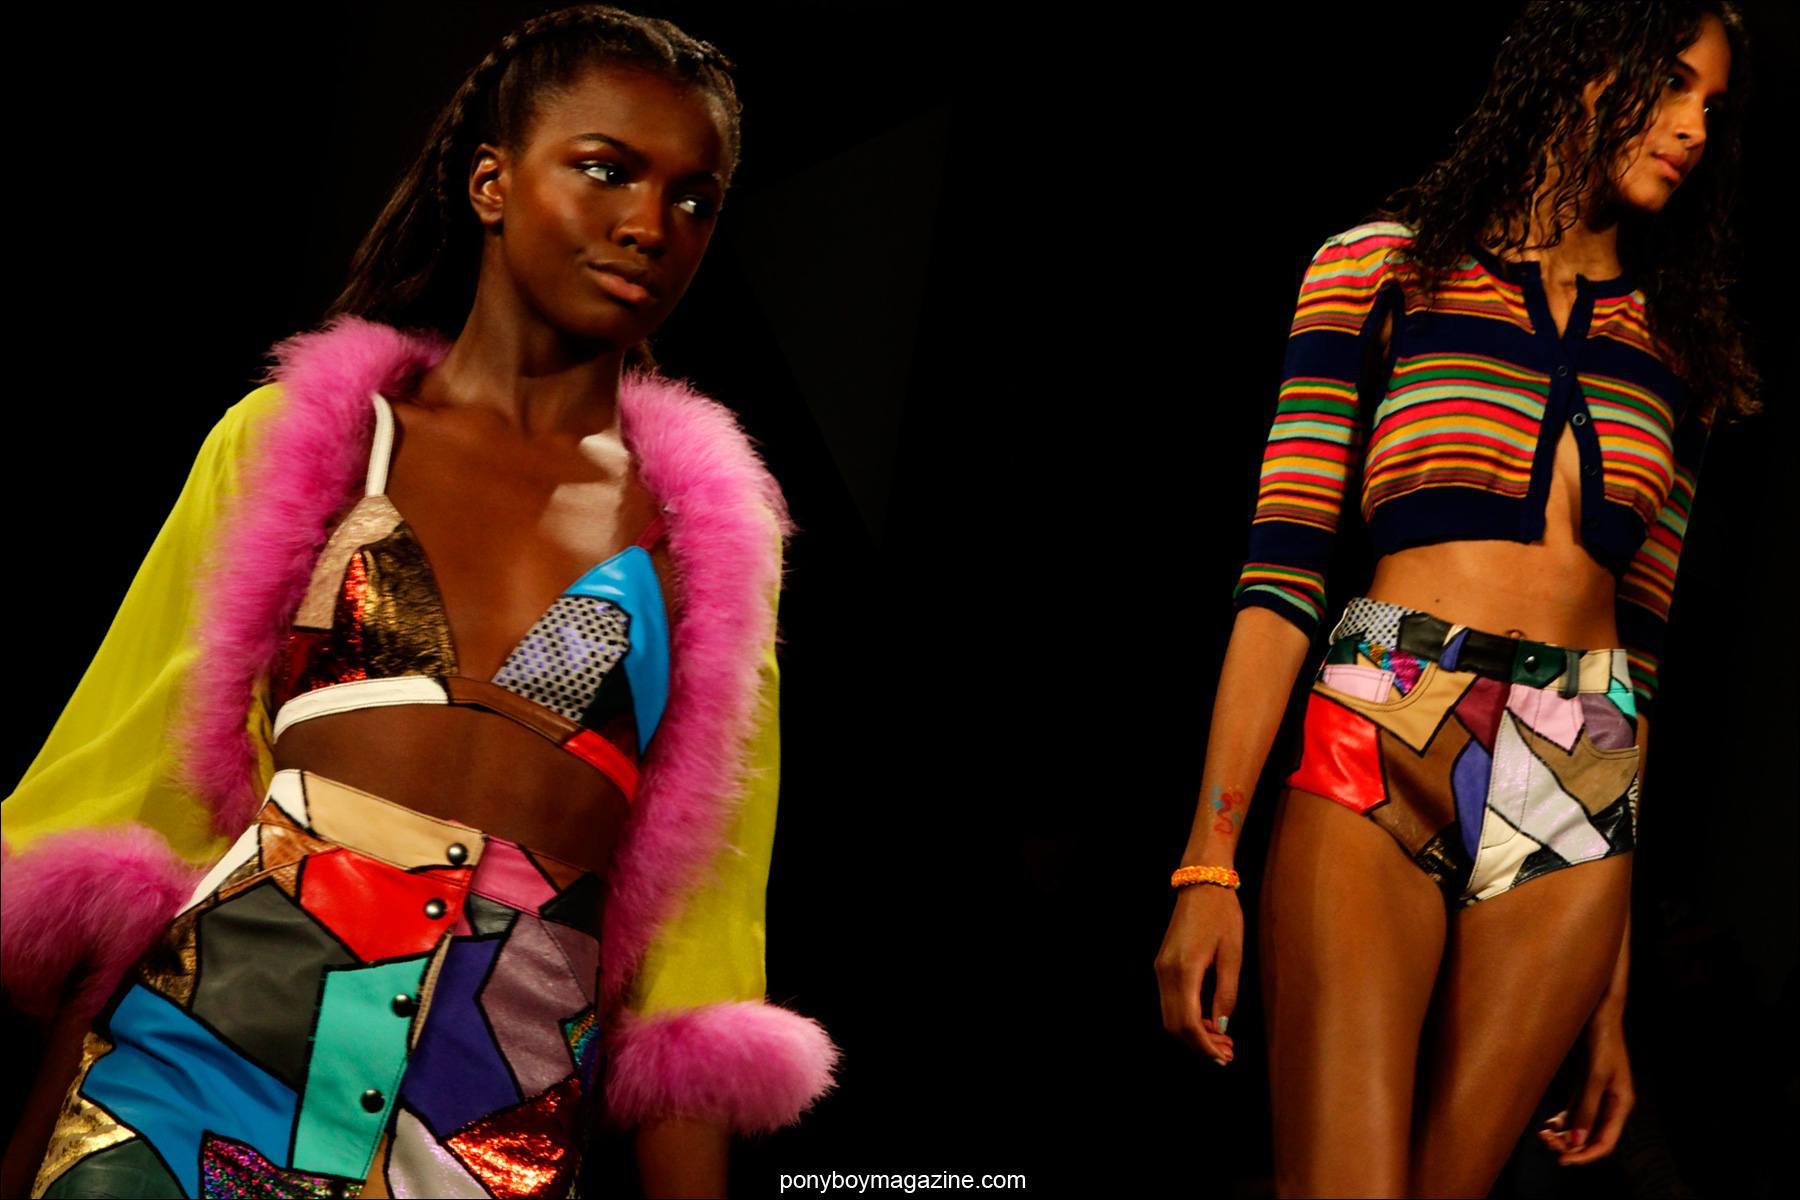 Colorful women's creations by Jeremy Scott Spring/Summer 2015 collection. Photos by Alexander Thompson for Ponyboy Magazine.